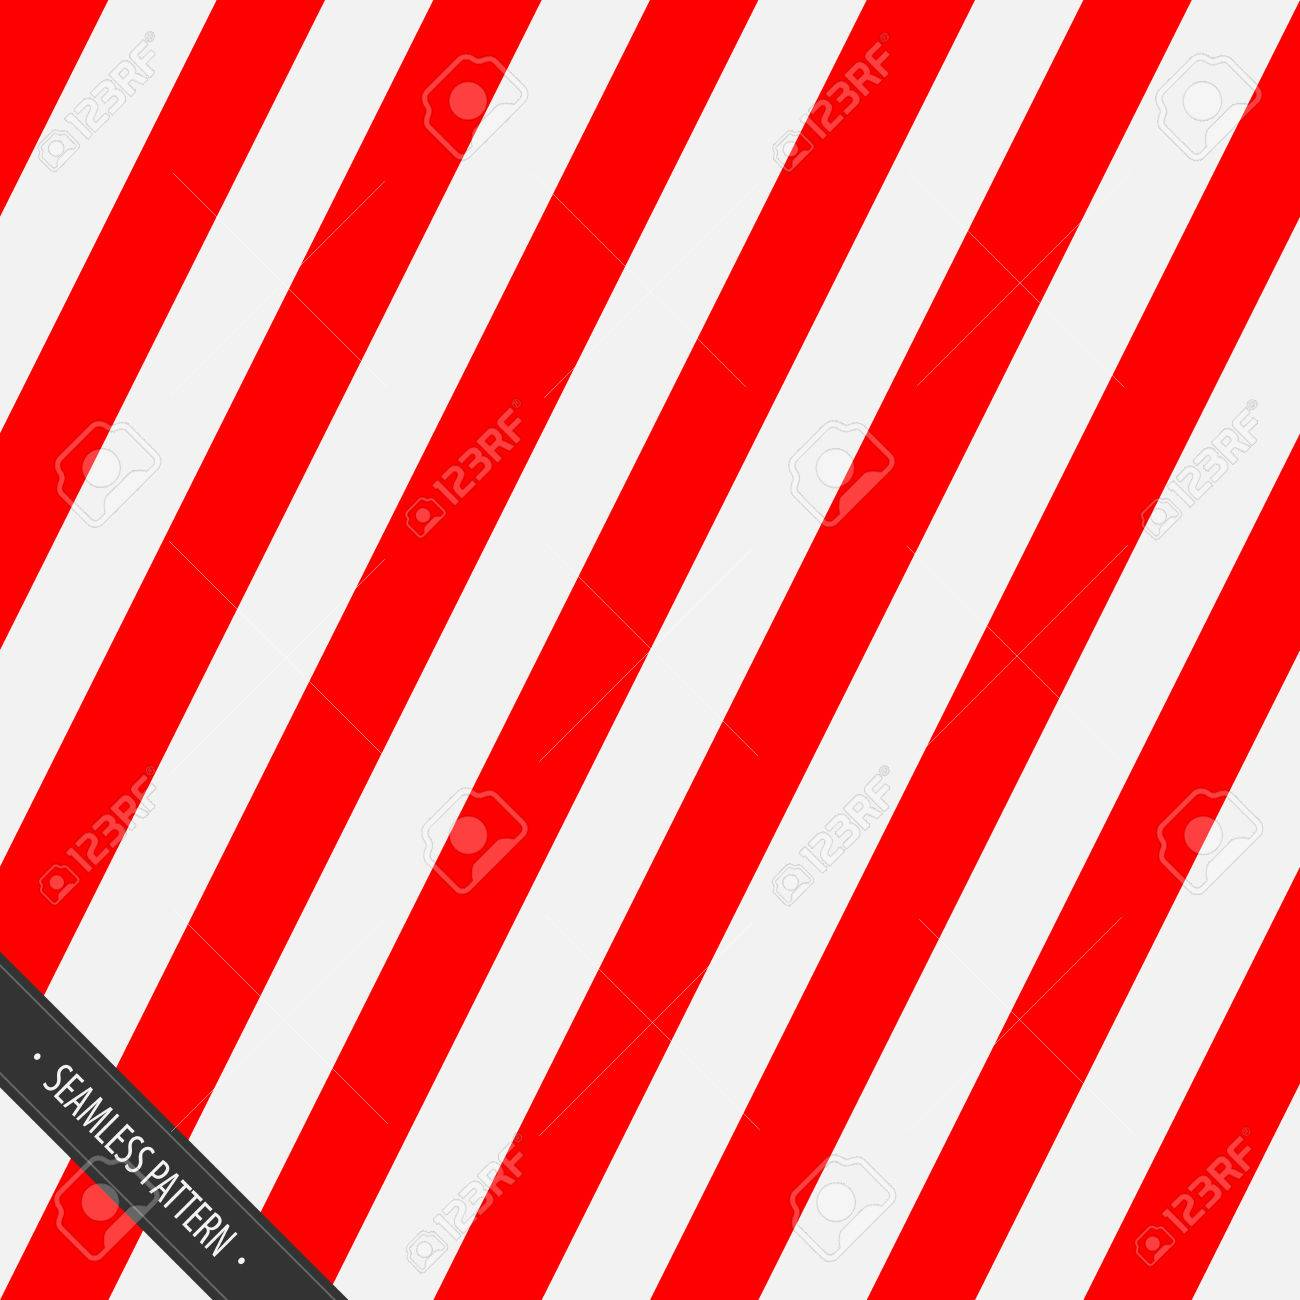 Seamless Wrapping Paper Pattern. Red and White Slanting Lines EPS10 Vector - 51756307